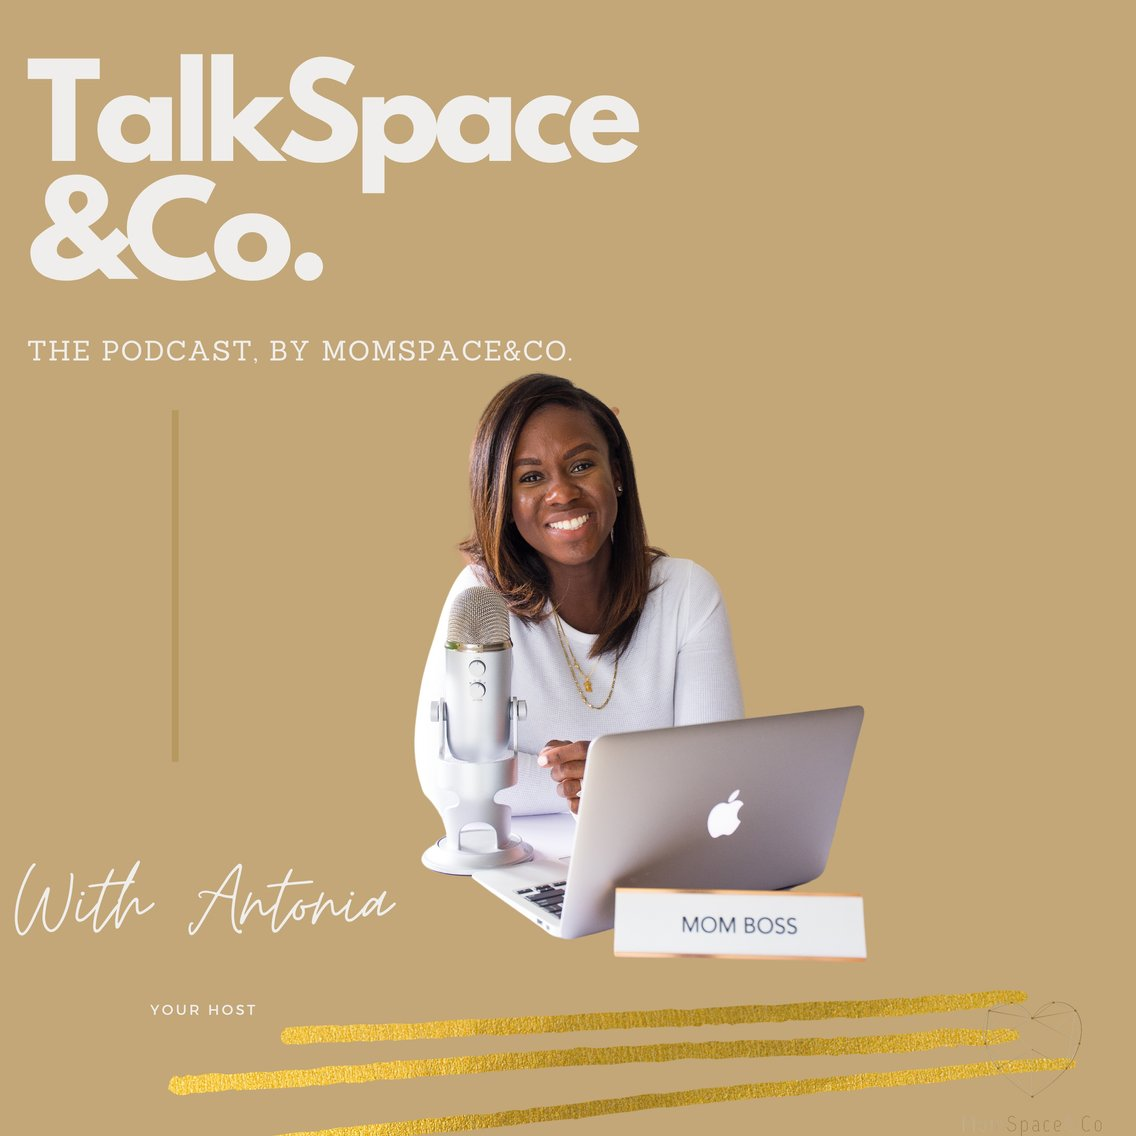 Talk Space&Co. The Podcast - Cover Image